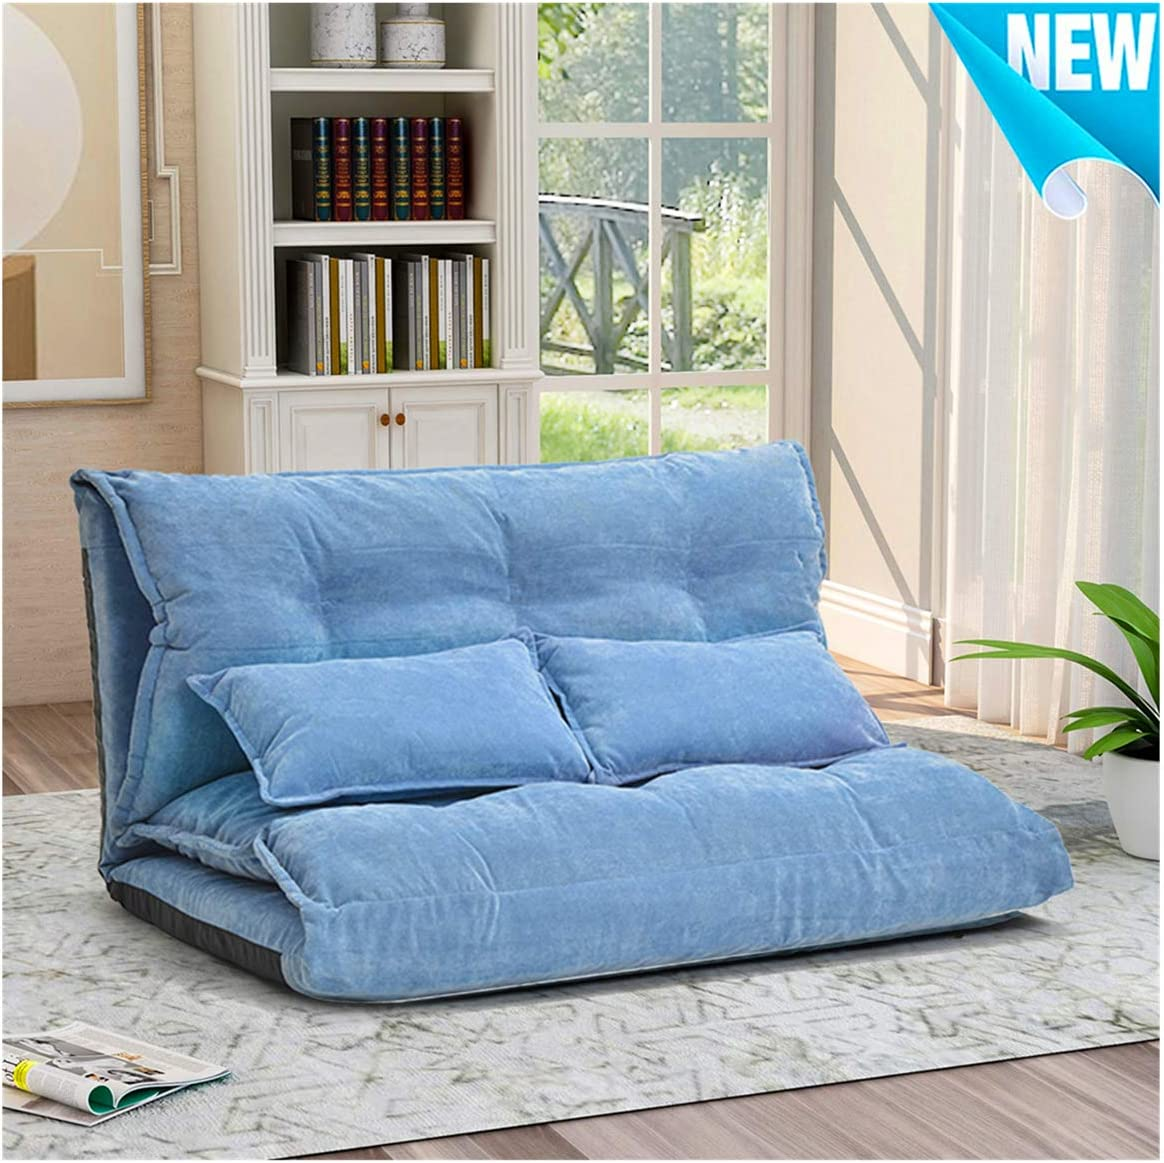 Foldable Floor Couch Lounge, Norcia Adjustable 45 Thicken Floor Sofa Bed with 2 Pillows, Sleeper Sofa Chair Chaise Loveseat Futon Cushion Seating for Bedroom and Living Room